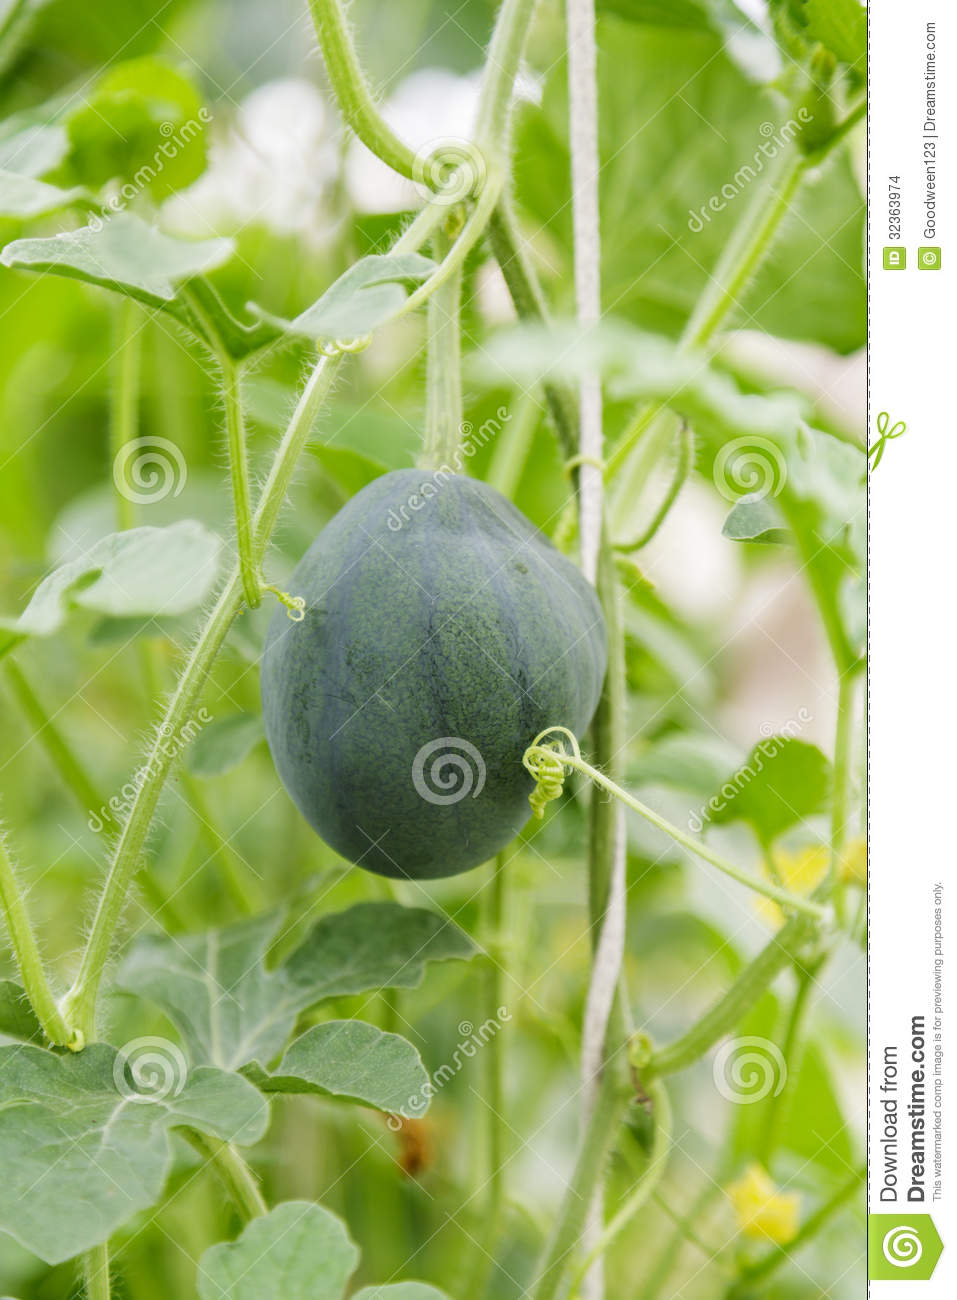 how to move watermelon plants